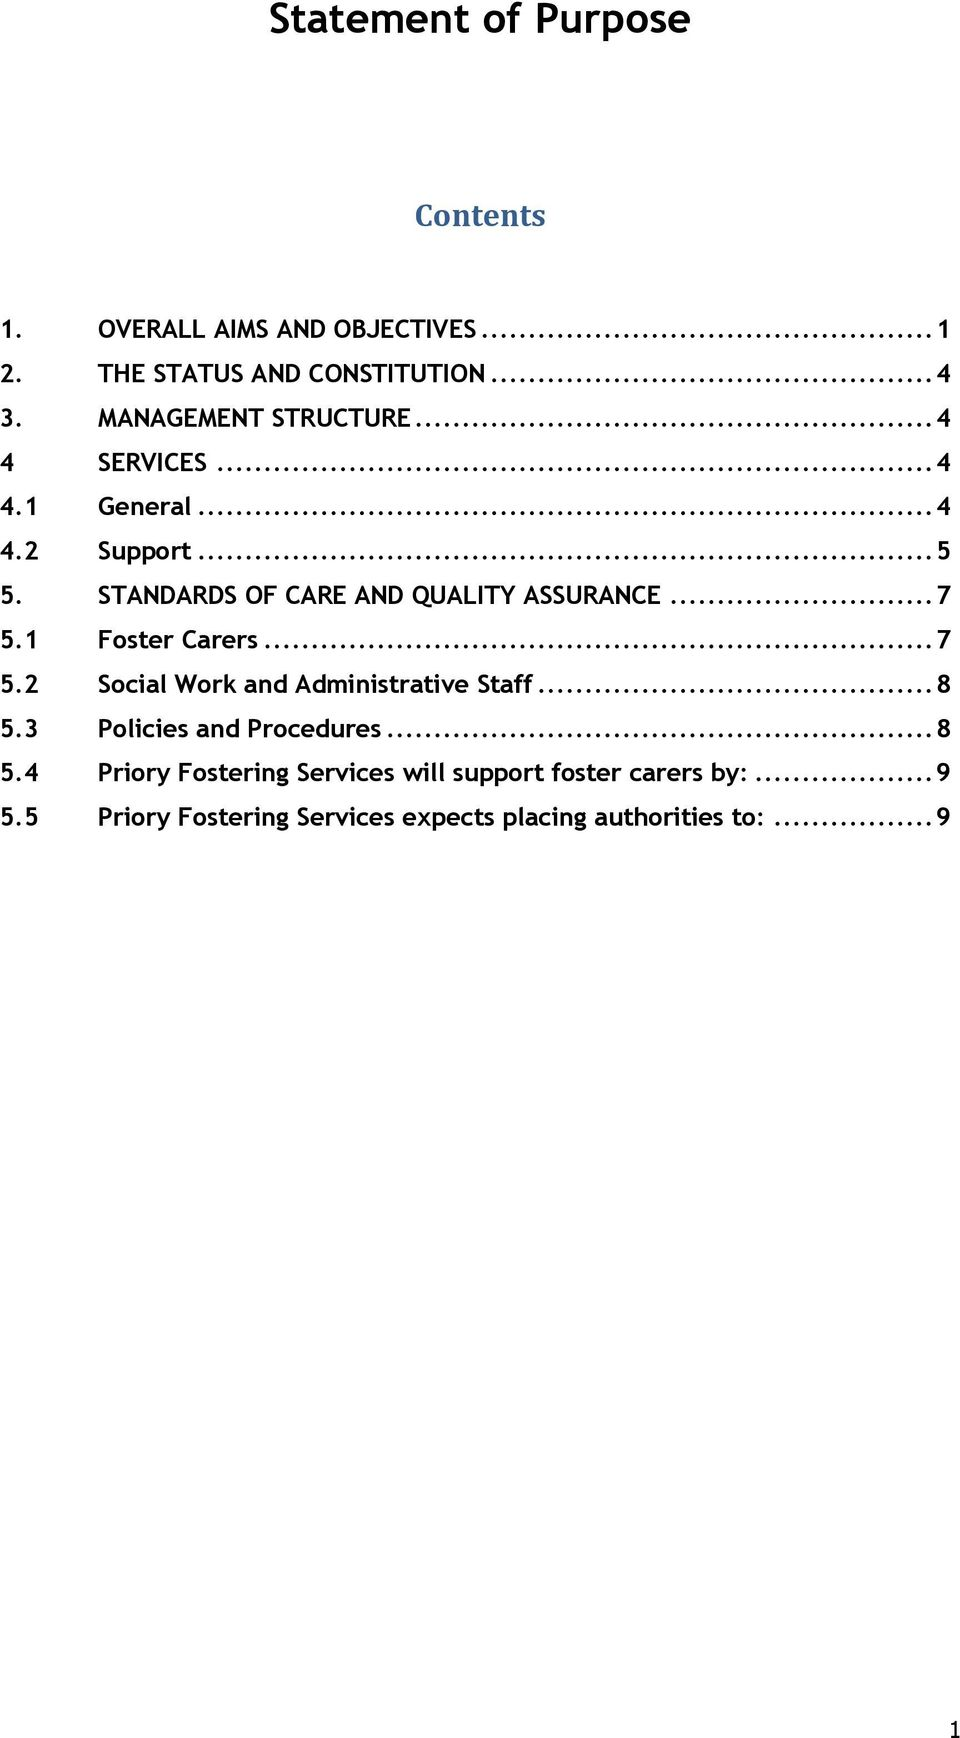 STANDARDS OF CARE AND QUALITY ASSURANCE... 7 5.1 Foster Carers... 7 5.2 Social Work and Administrative Staff... 8 5.